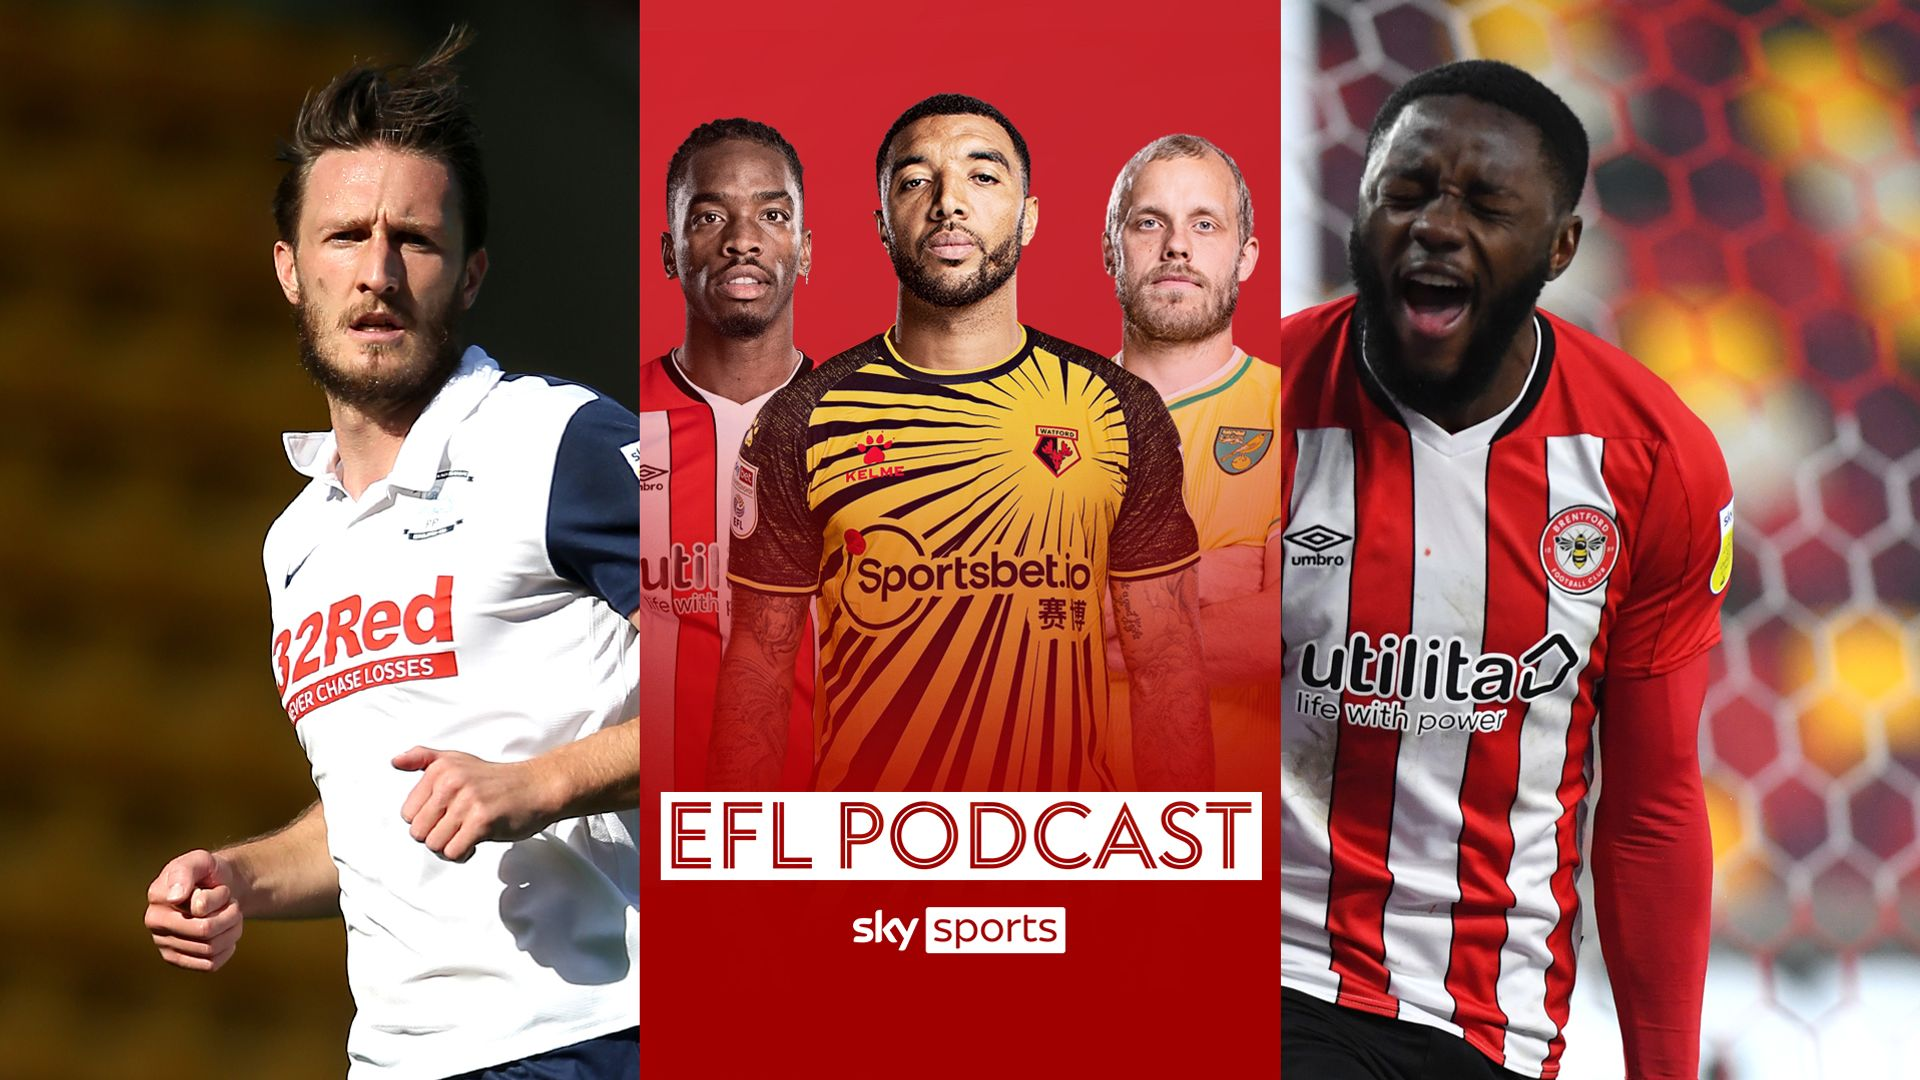 EFL Podcast: Davies to LFC, Ledson's hops & transfer latest